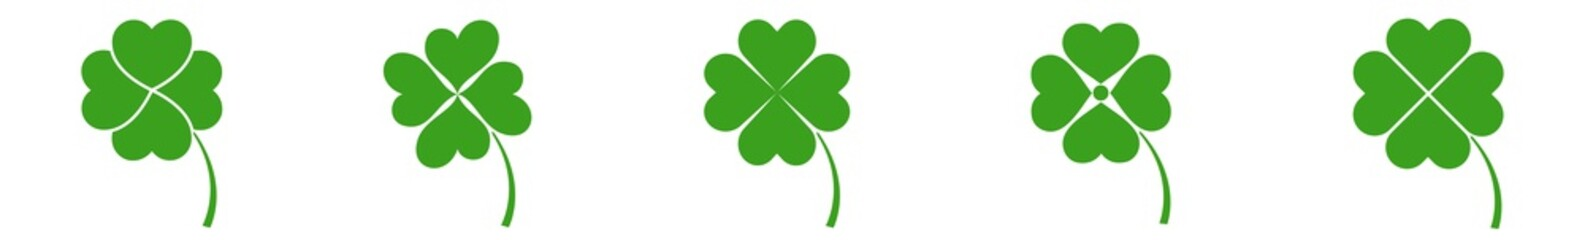 Shamrock Icon Green | Shamrocks | Four Leaf Clover | Irish Symbol | St Patrick's Day Logo | Luck Sign | Isolated | Variations Wall mural